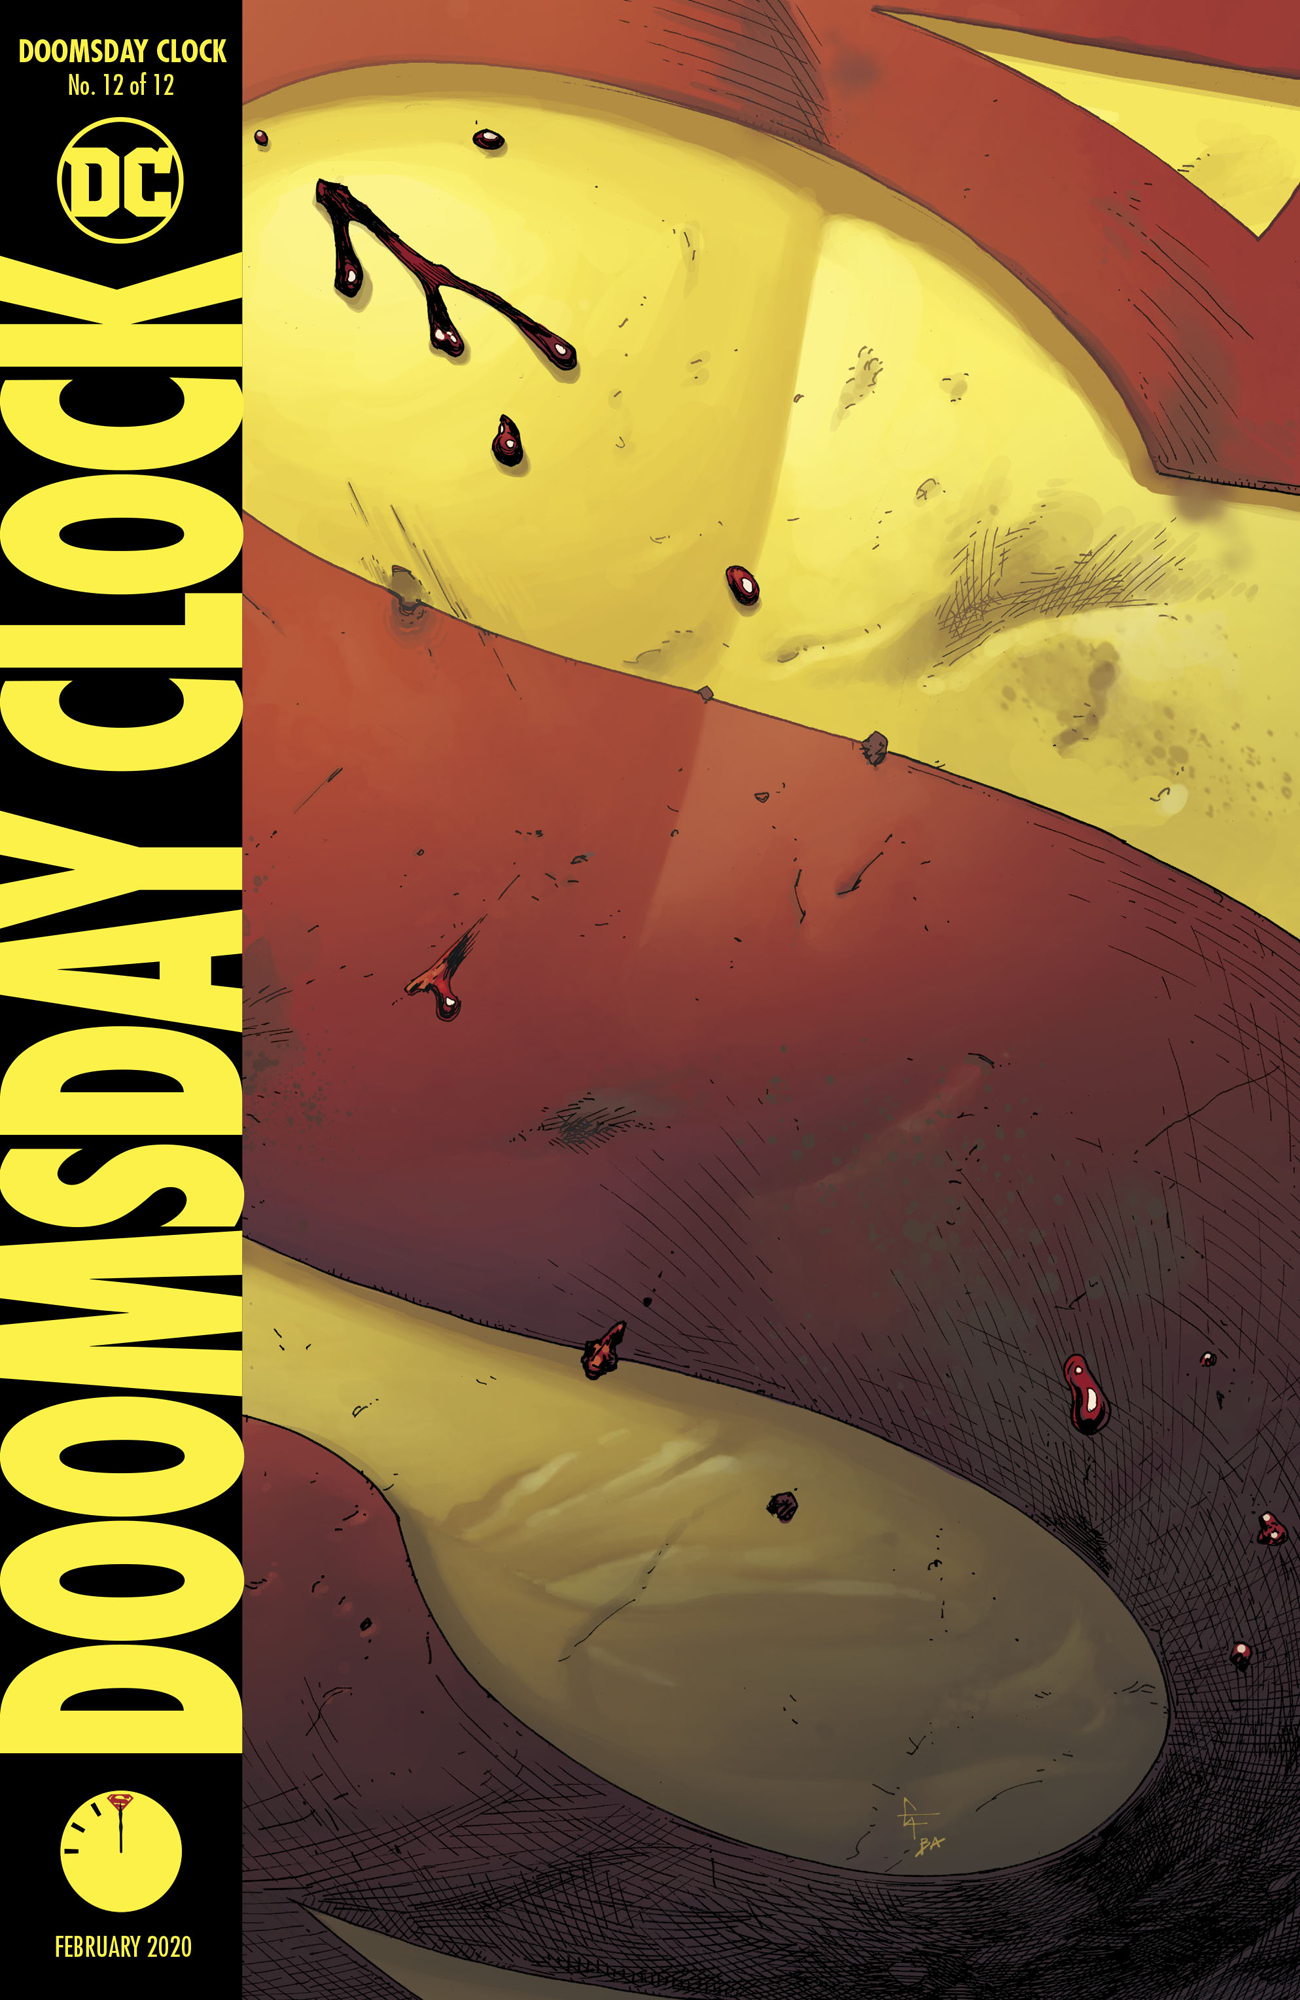 Image result for doomsday clock 12